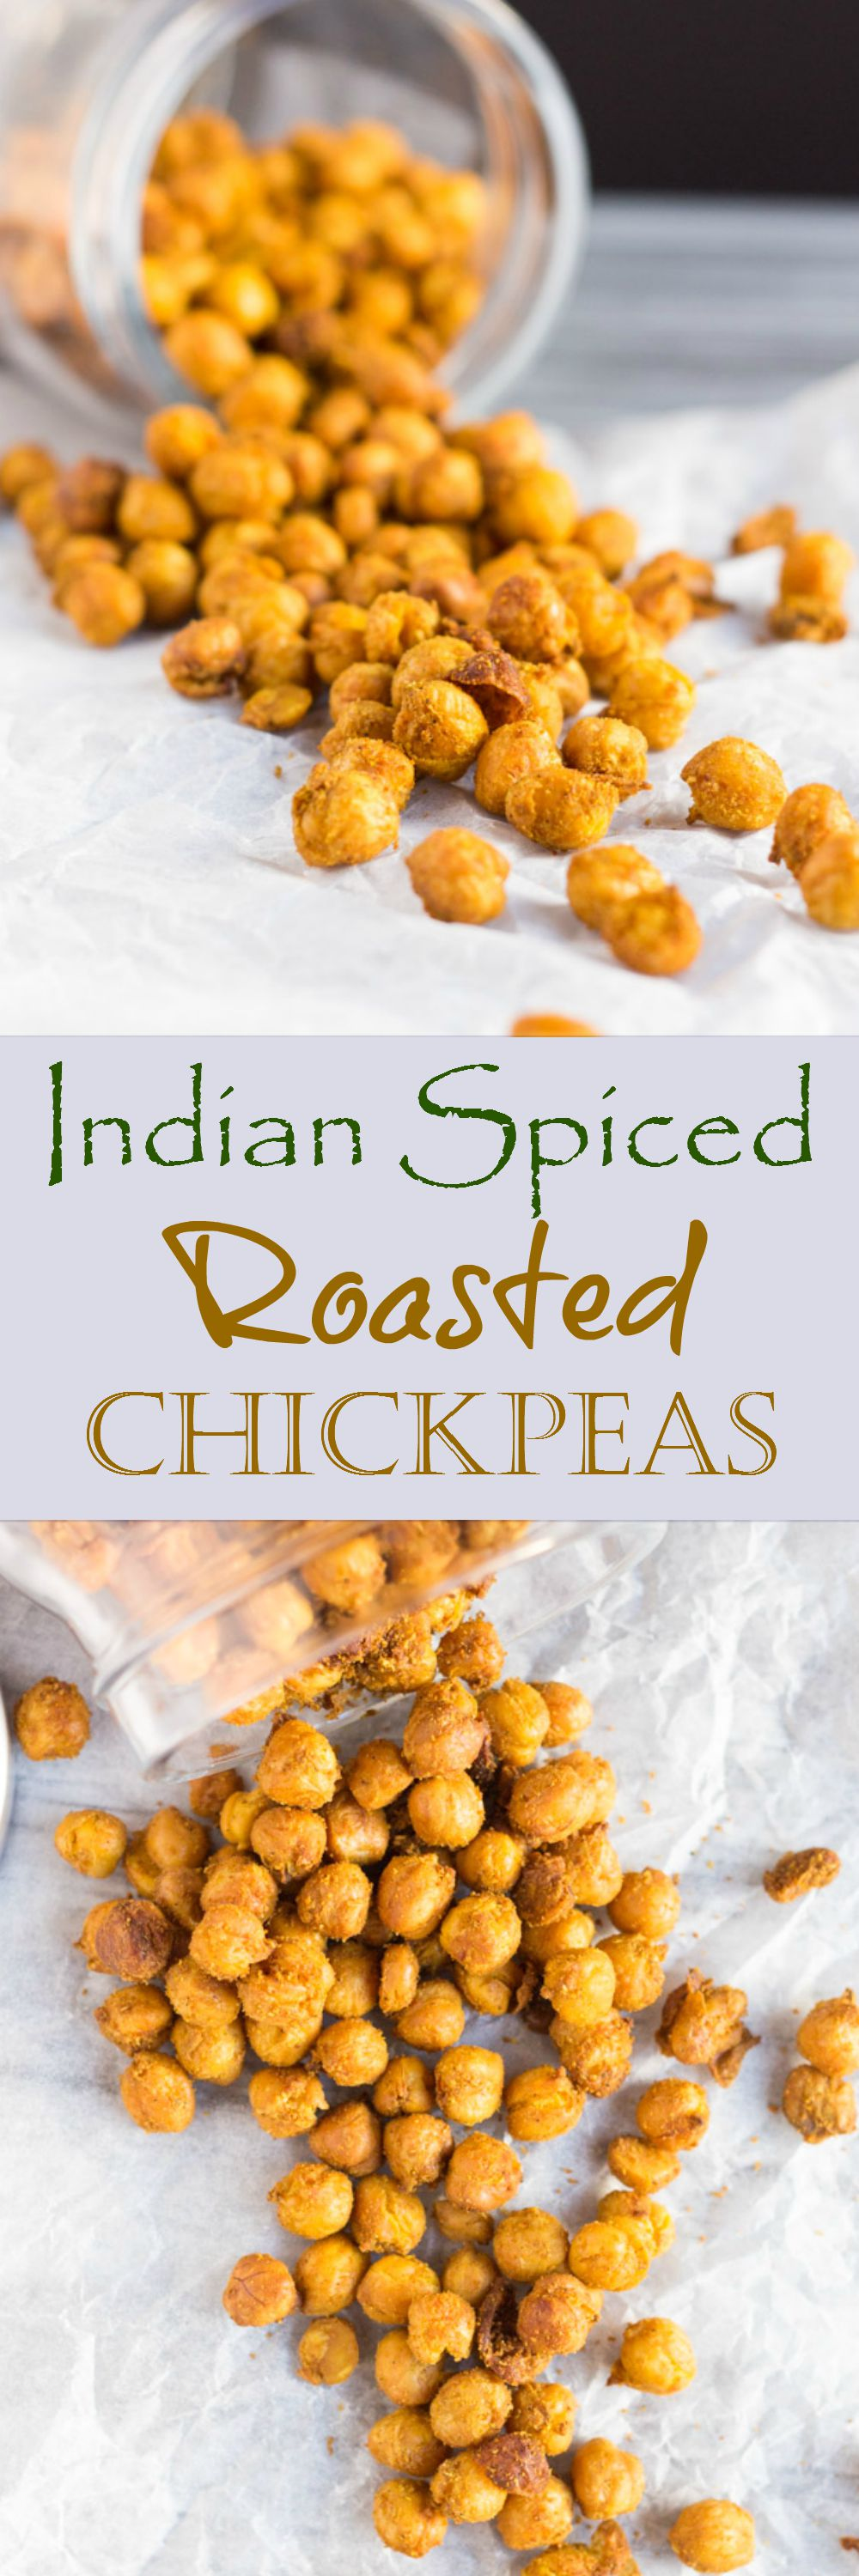 Indian Spiced Roasted Chickpeas Recipe Healthy protein